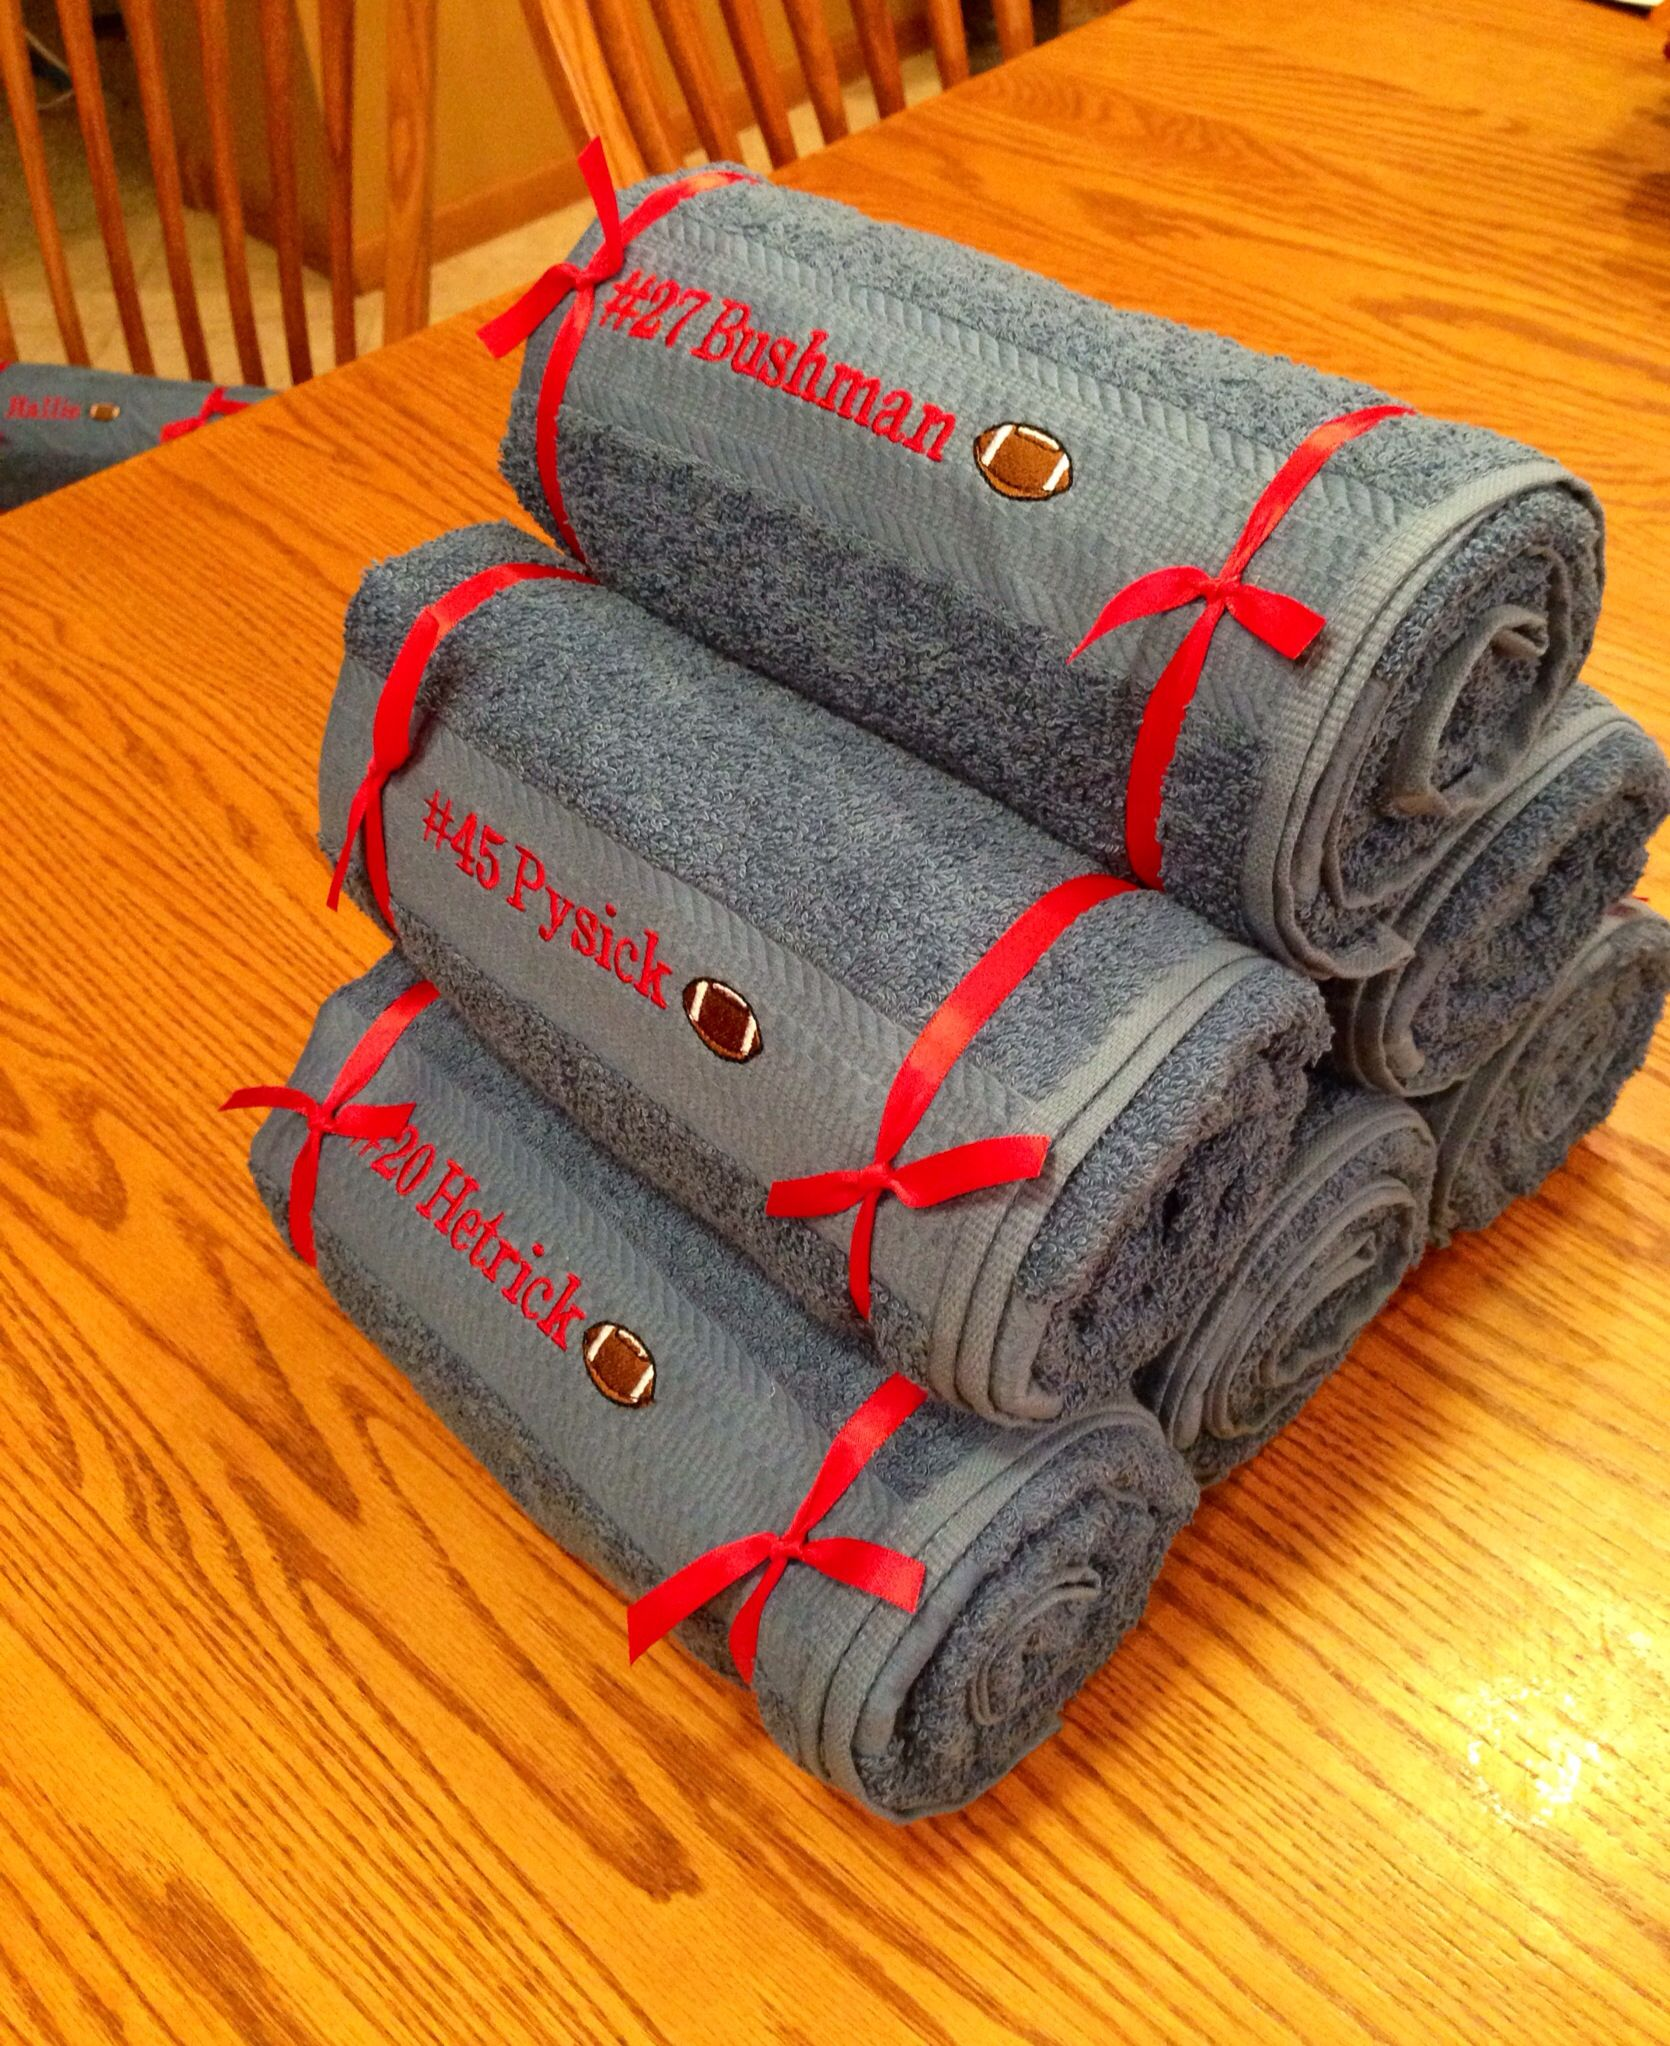 Senior Football Gifts. Embroidered Bath Towels. Cost Under